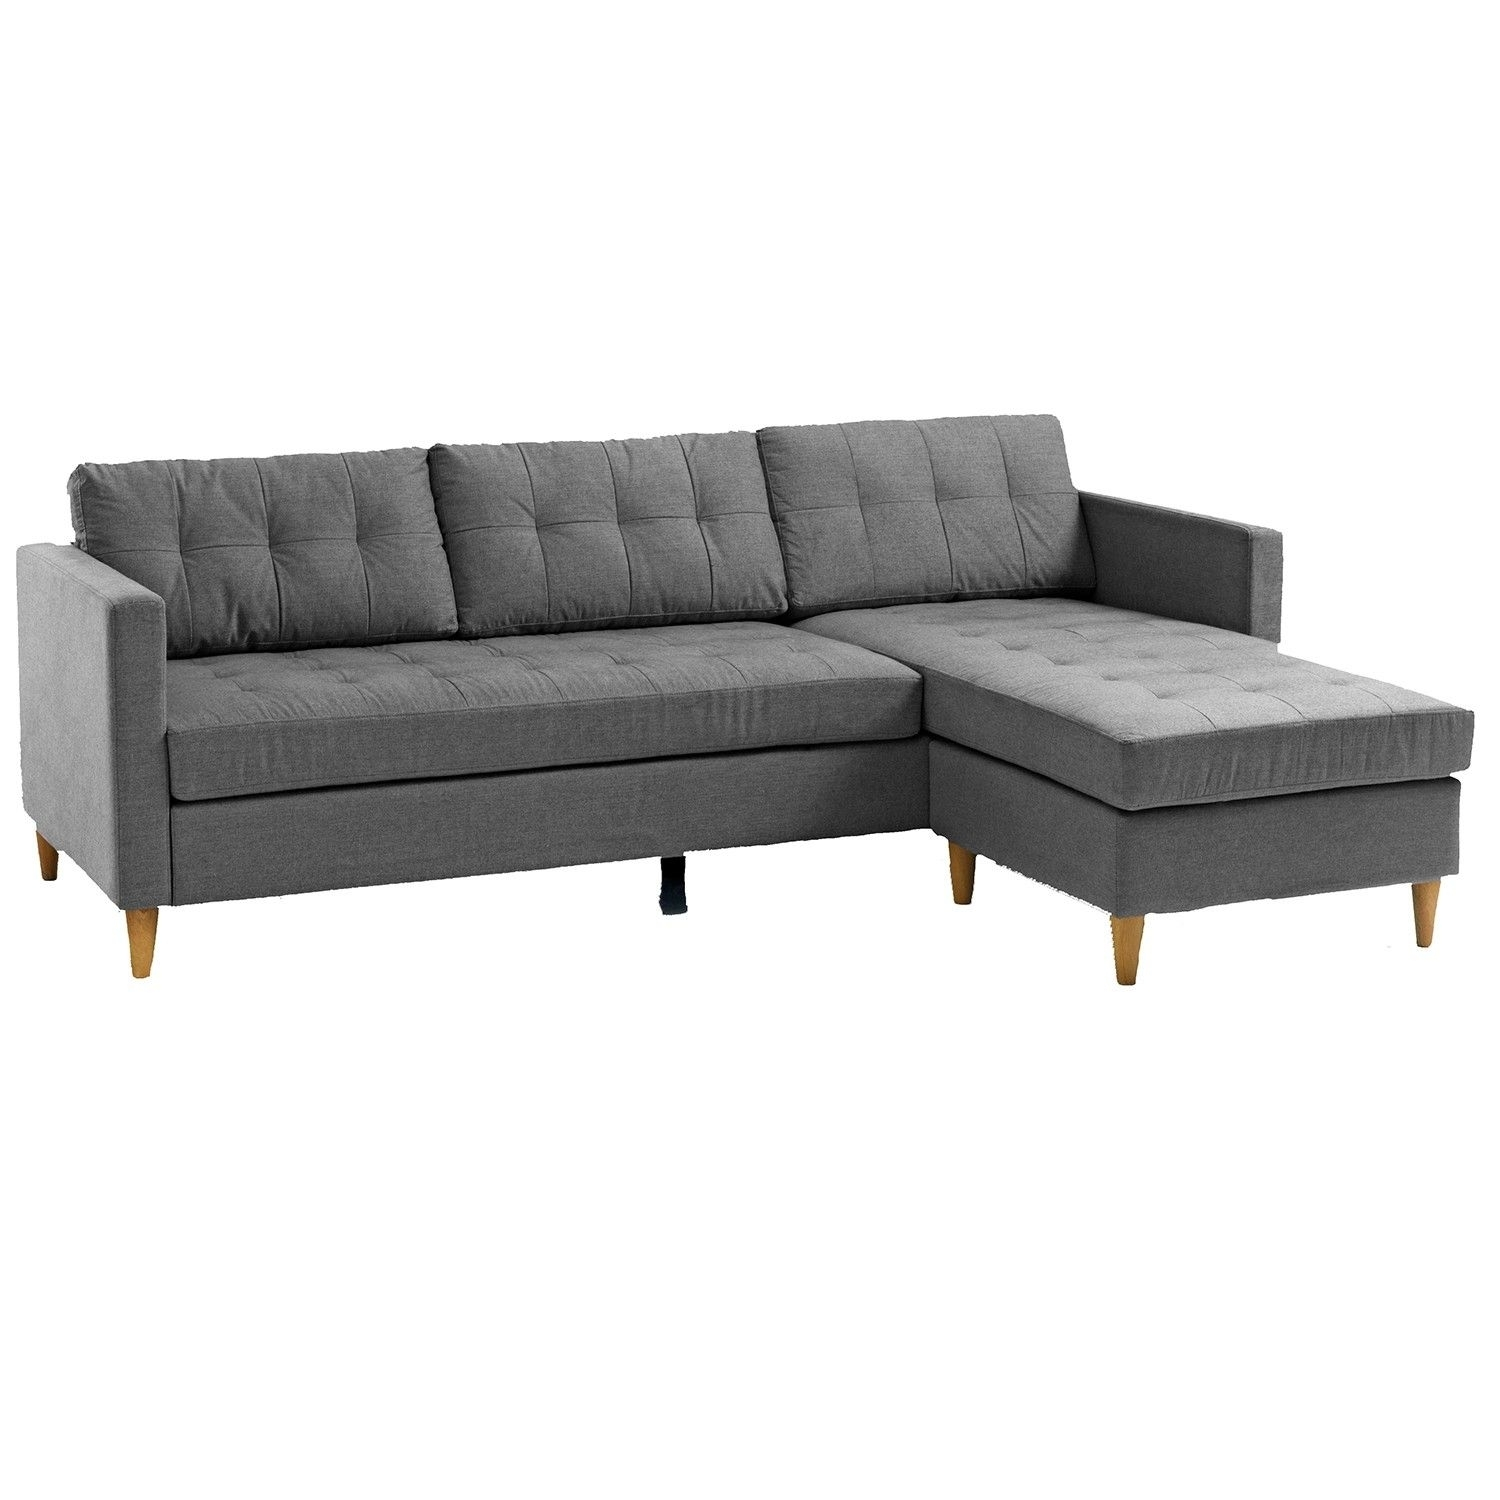 Falslev Sectional Sofa With Chaise (Grey) | Apartments, Living Rooms pertaining to Jysk Sectional Sofas (Image 6 of 10)